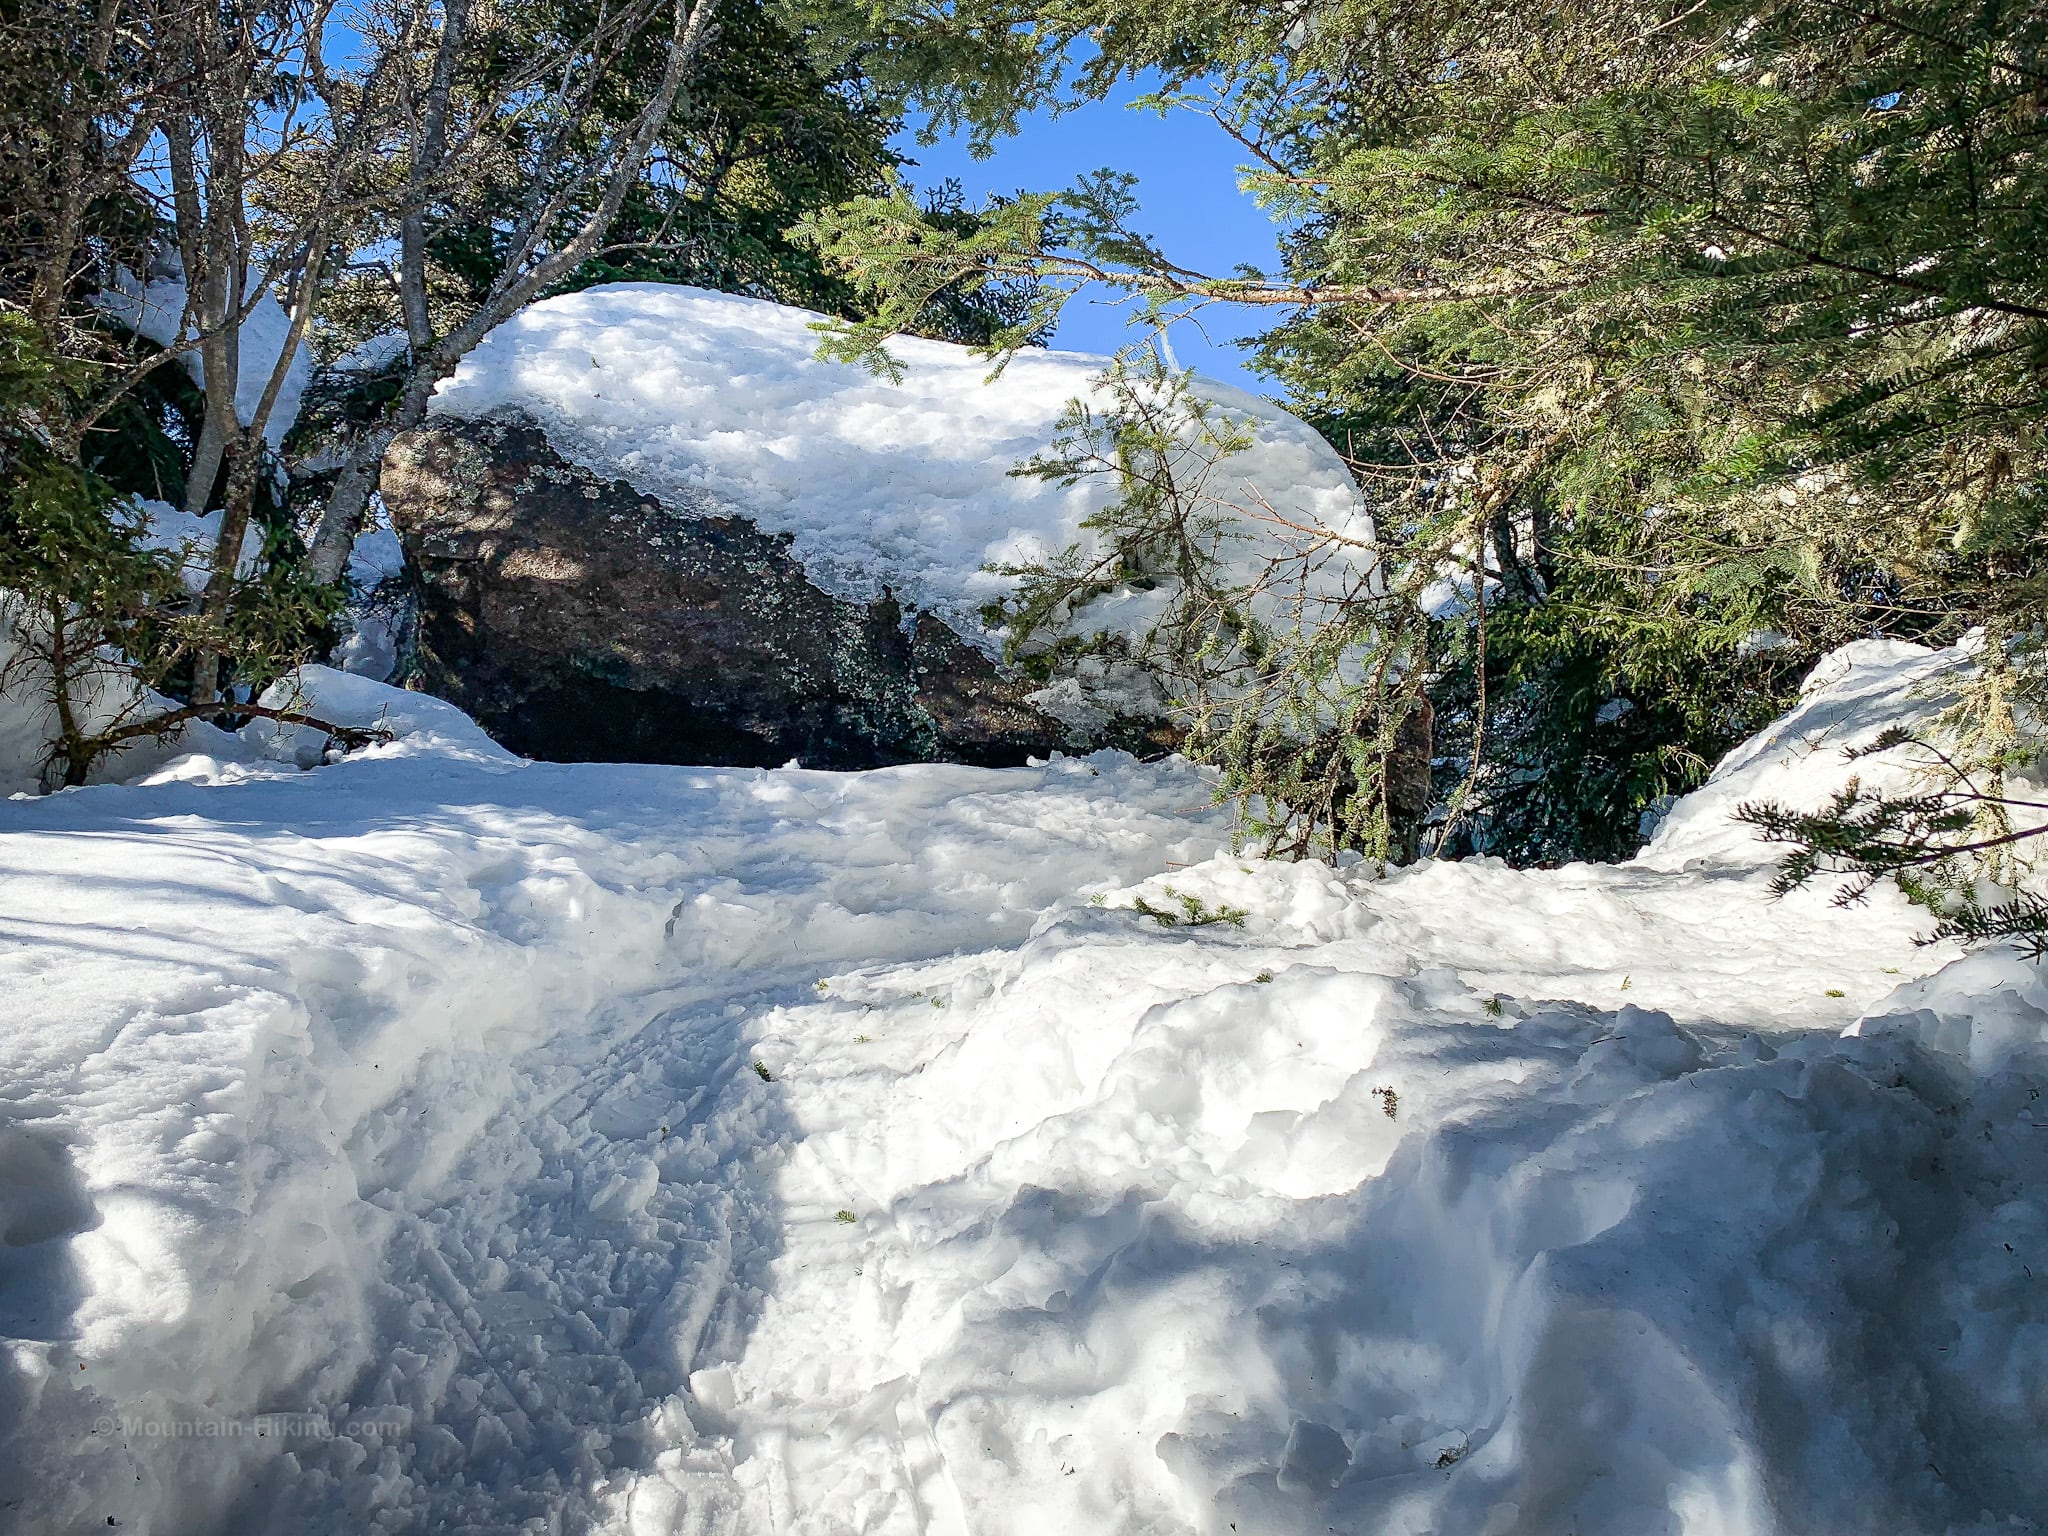 boulder covered in snow on mountain summit